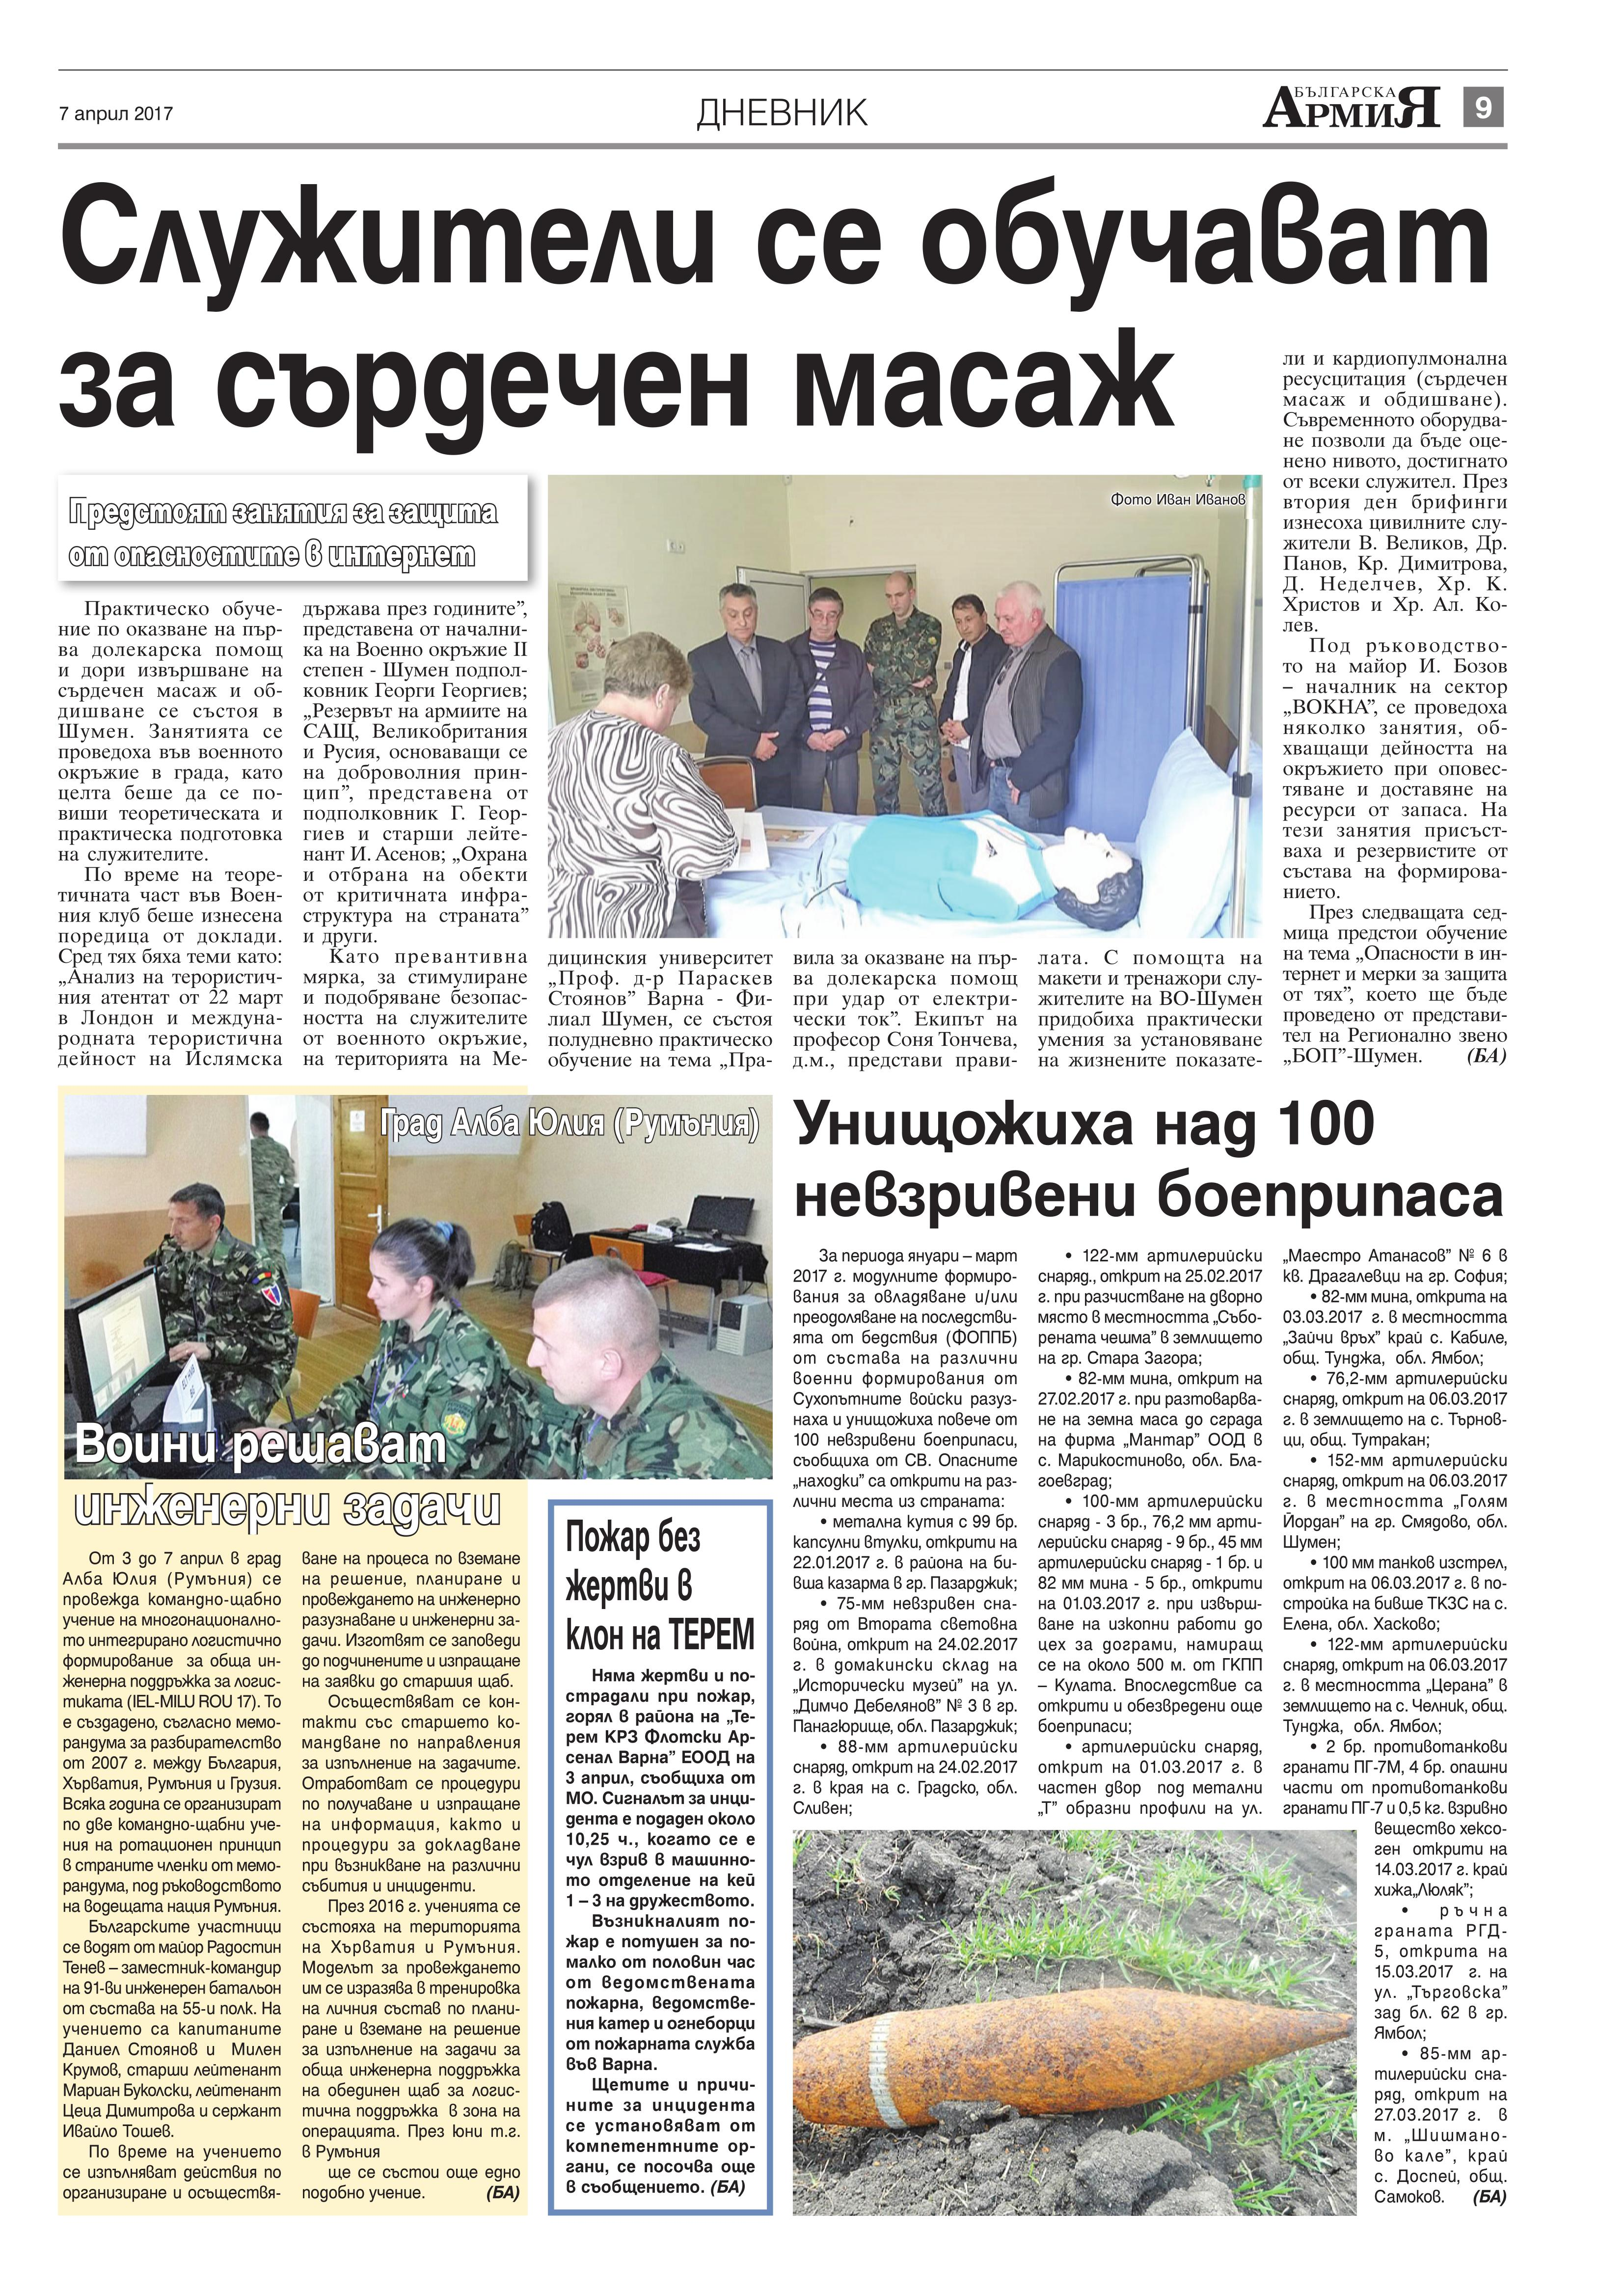 https://www.armymedia.bg/wp-content/uploads/2015/06/09.page1_-18.jpg